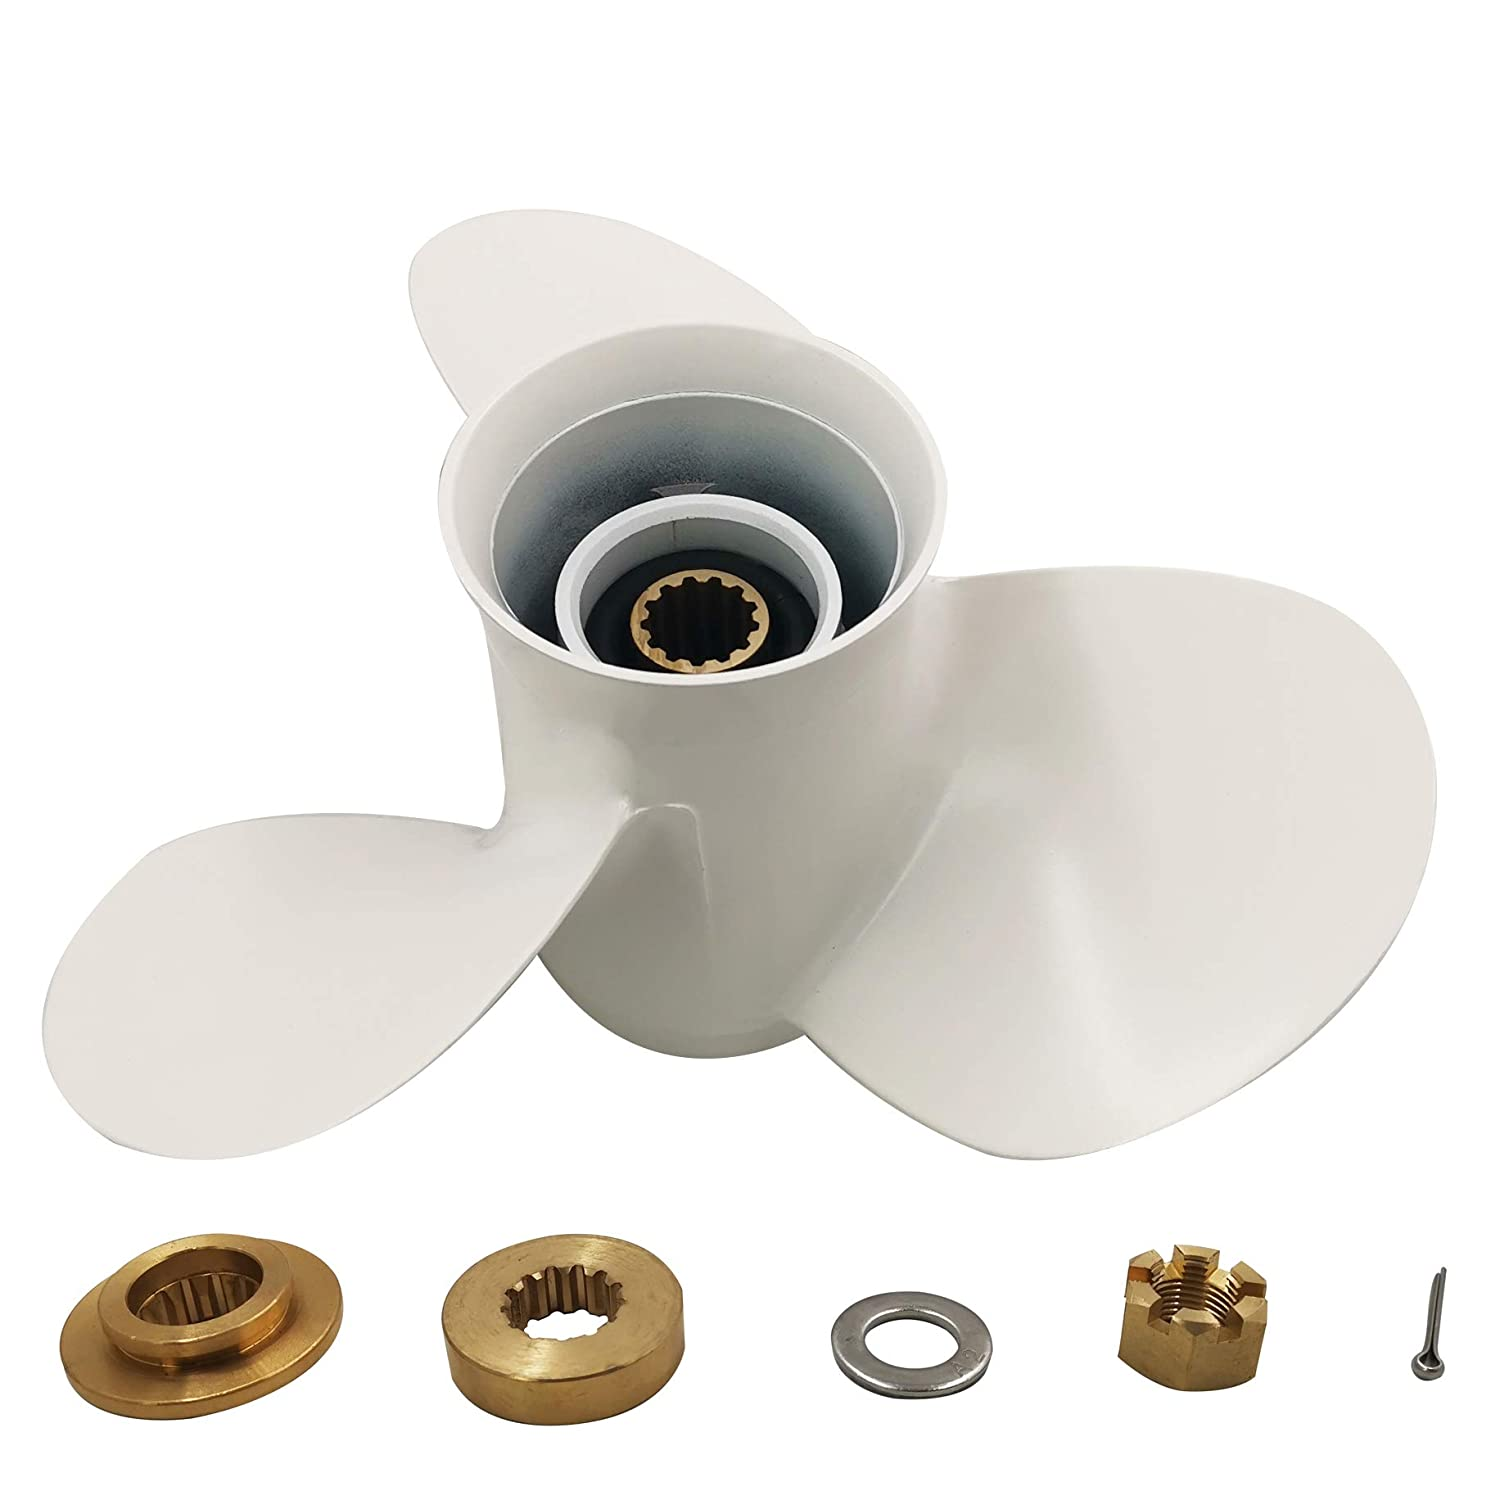 for Yamaha 25-60HP Aluminum 3 Blade Prop Propeller with All Kits